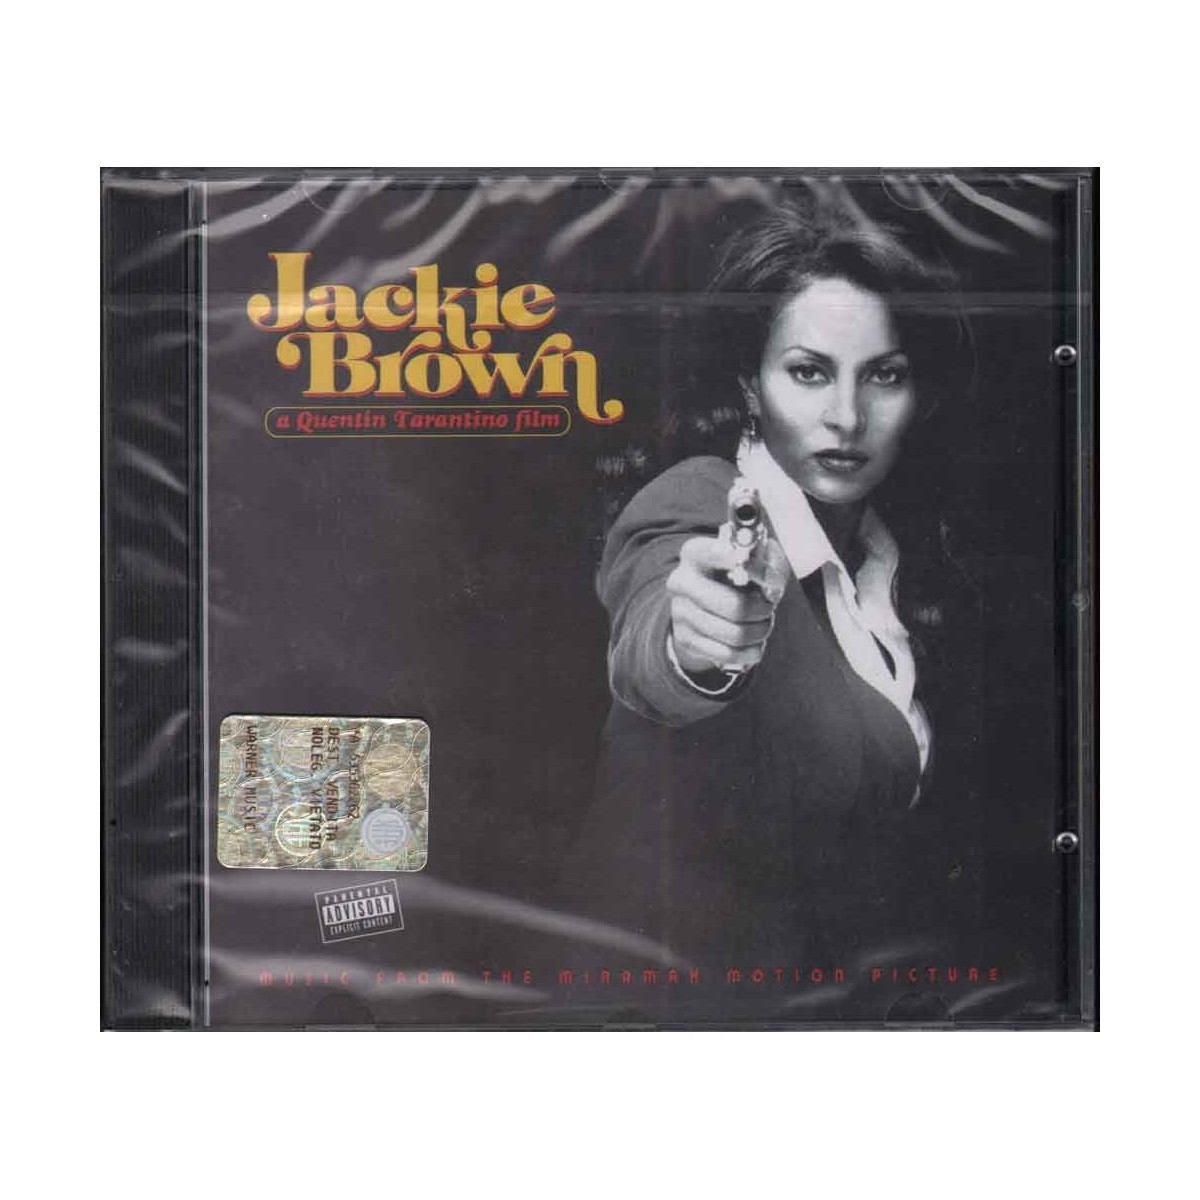 AA.VV. CD Jackie Brown OST Soundtrack Sigillato 0093624684121